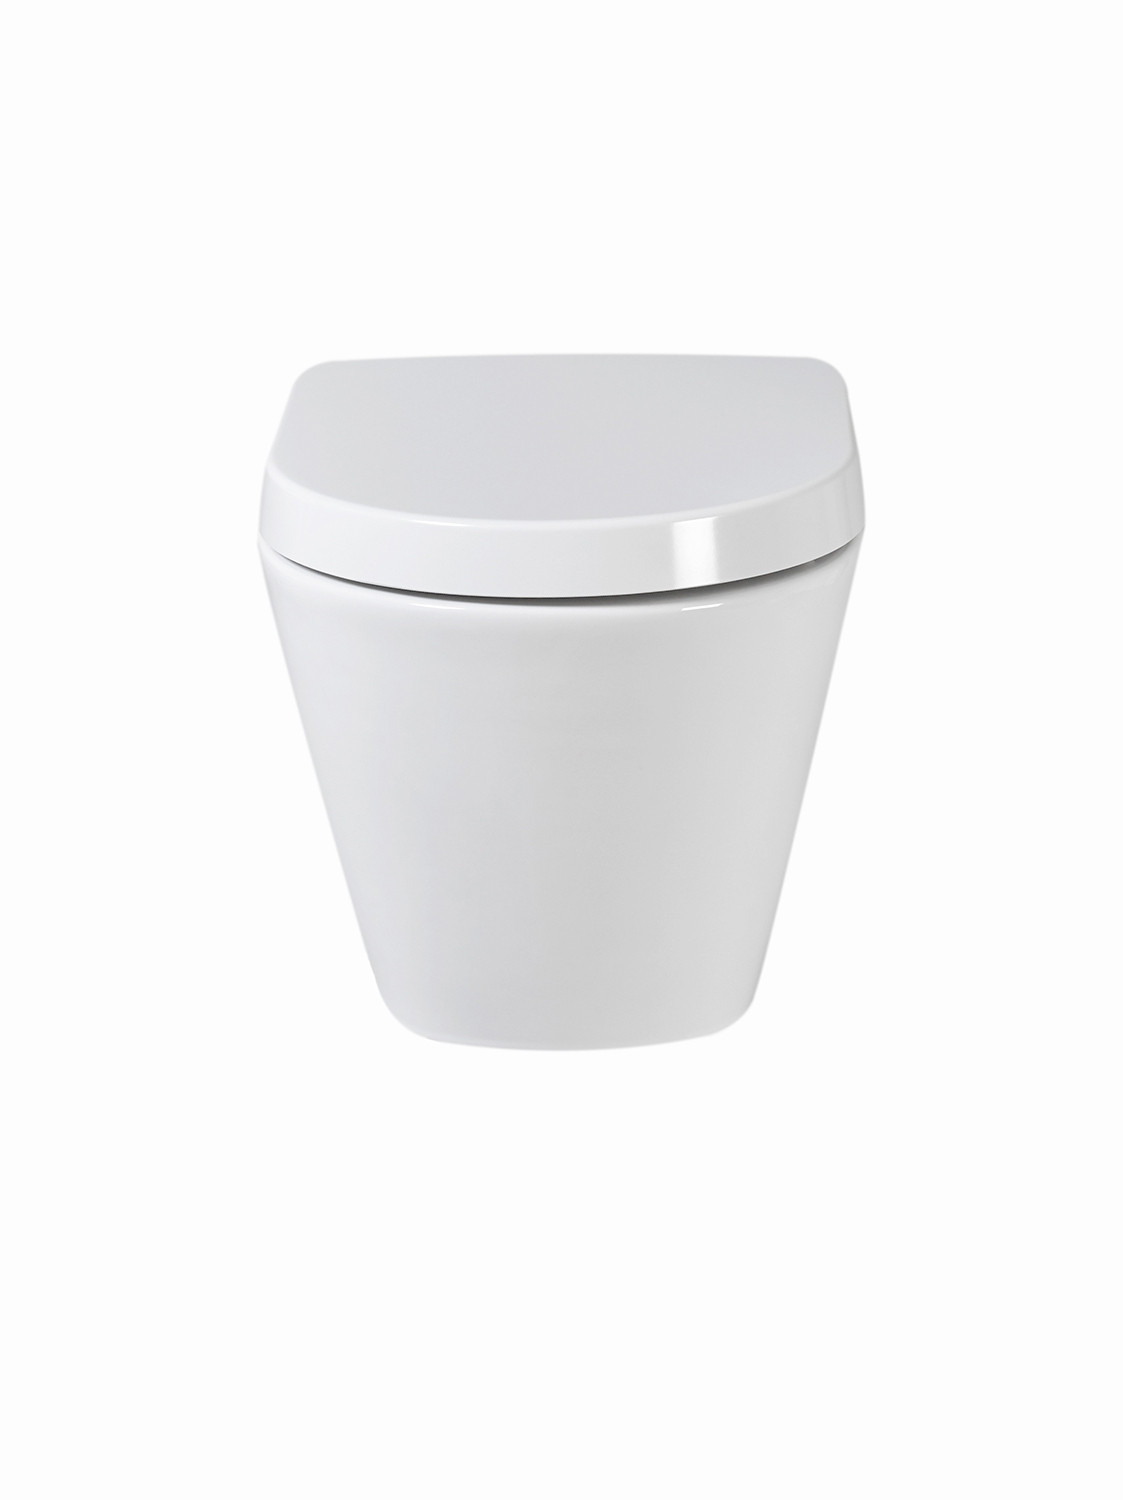 Resort Wall-Hung Toilet with Soft-Close Seat